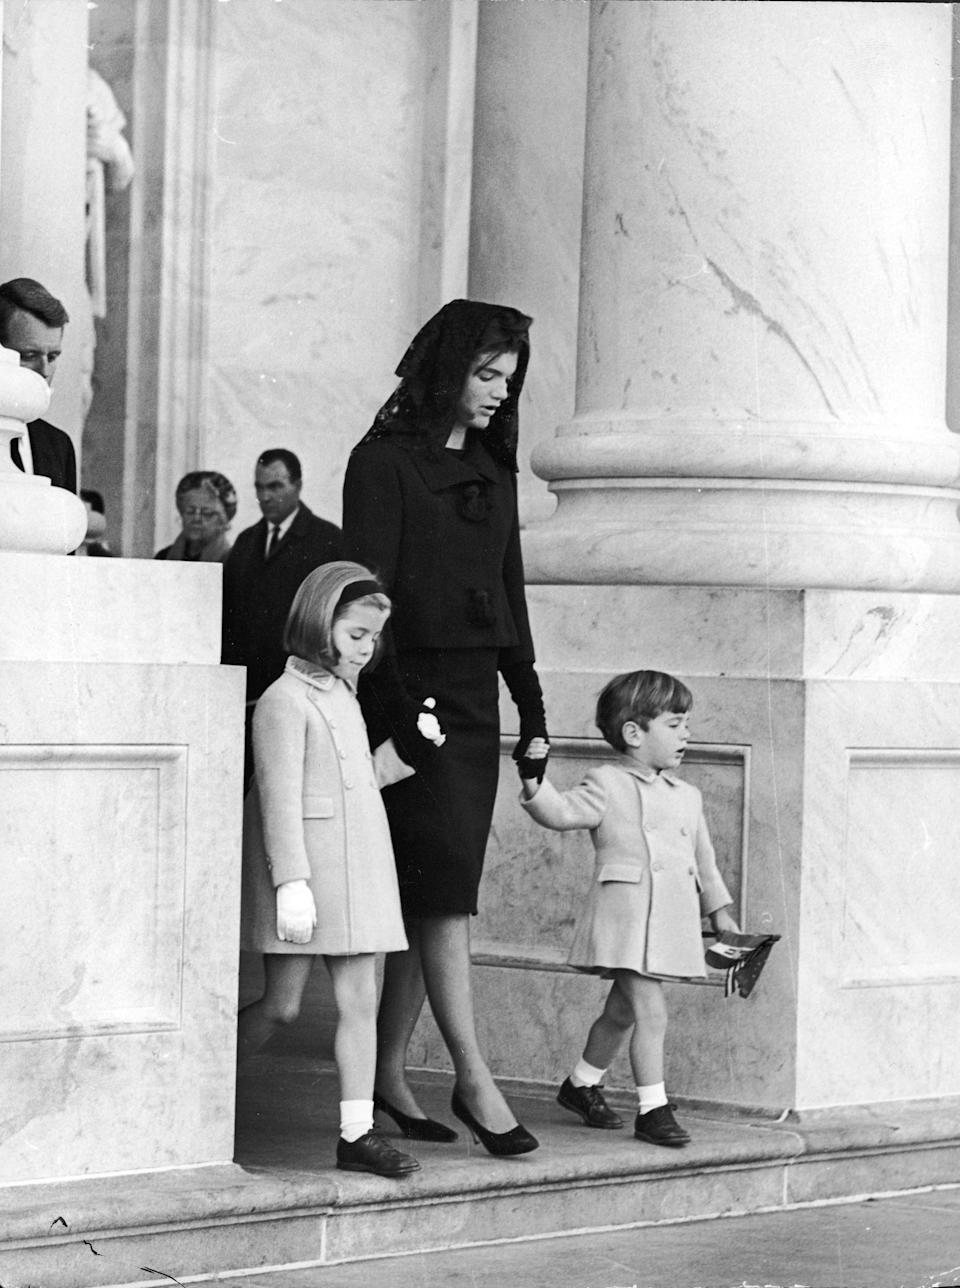 26th November 1963, First Lady Jacqueline Kennedy (1929 - 1994) holds the hands of her two children, John Jr (1960 - 1999) and Caroline, as they leave the White House to attend the Lying-in-State of assassinated President John F Kennedy at the Capitol, Washington, D C. Rober (Photo by Express/Getty Images)